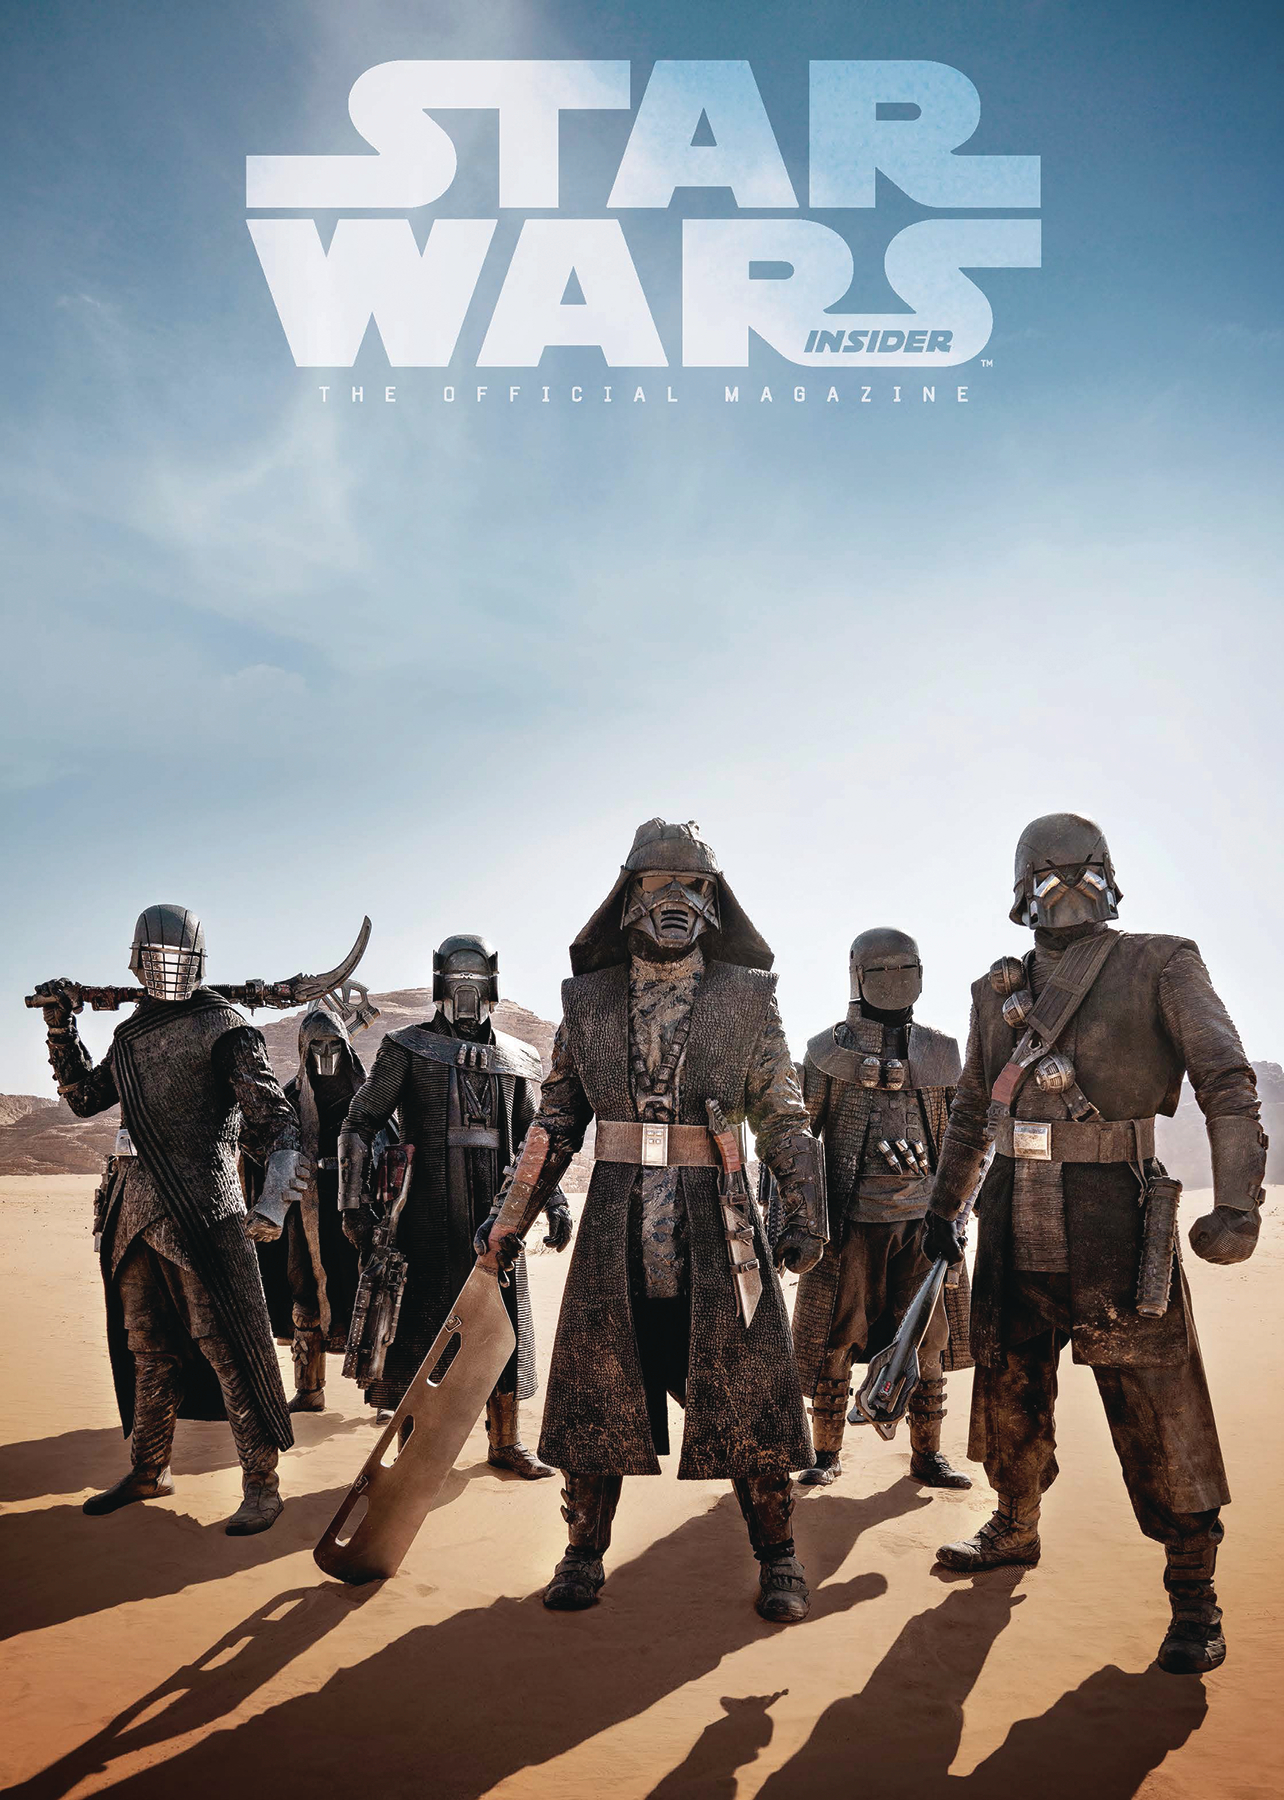 Star Wars Insider #196 (Comic Store Cover) (01.04.2020)